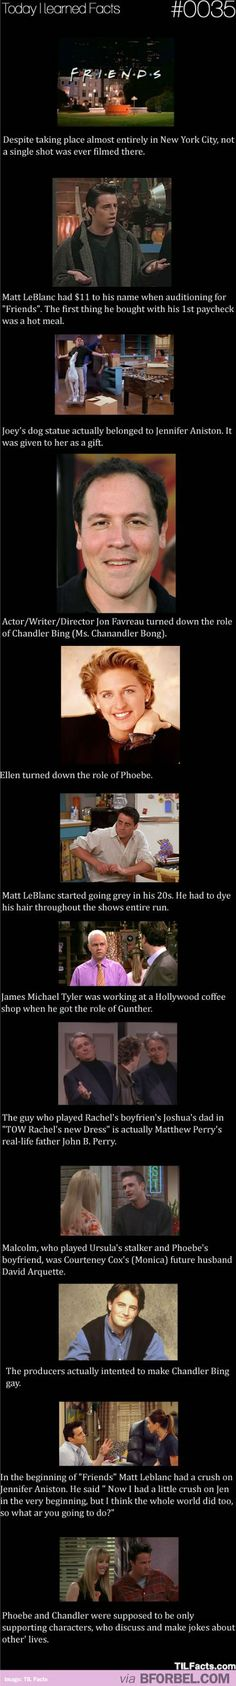 12 Facts About F.R.I.E.N.D.S That Will Blow Your Mind…